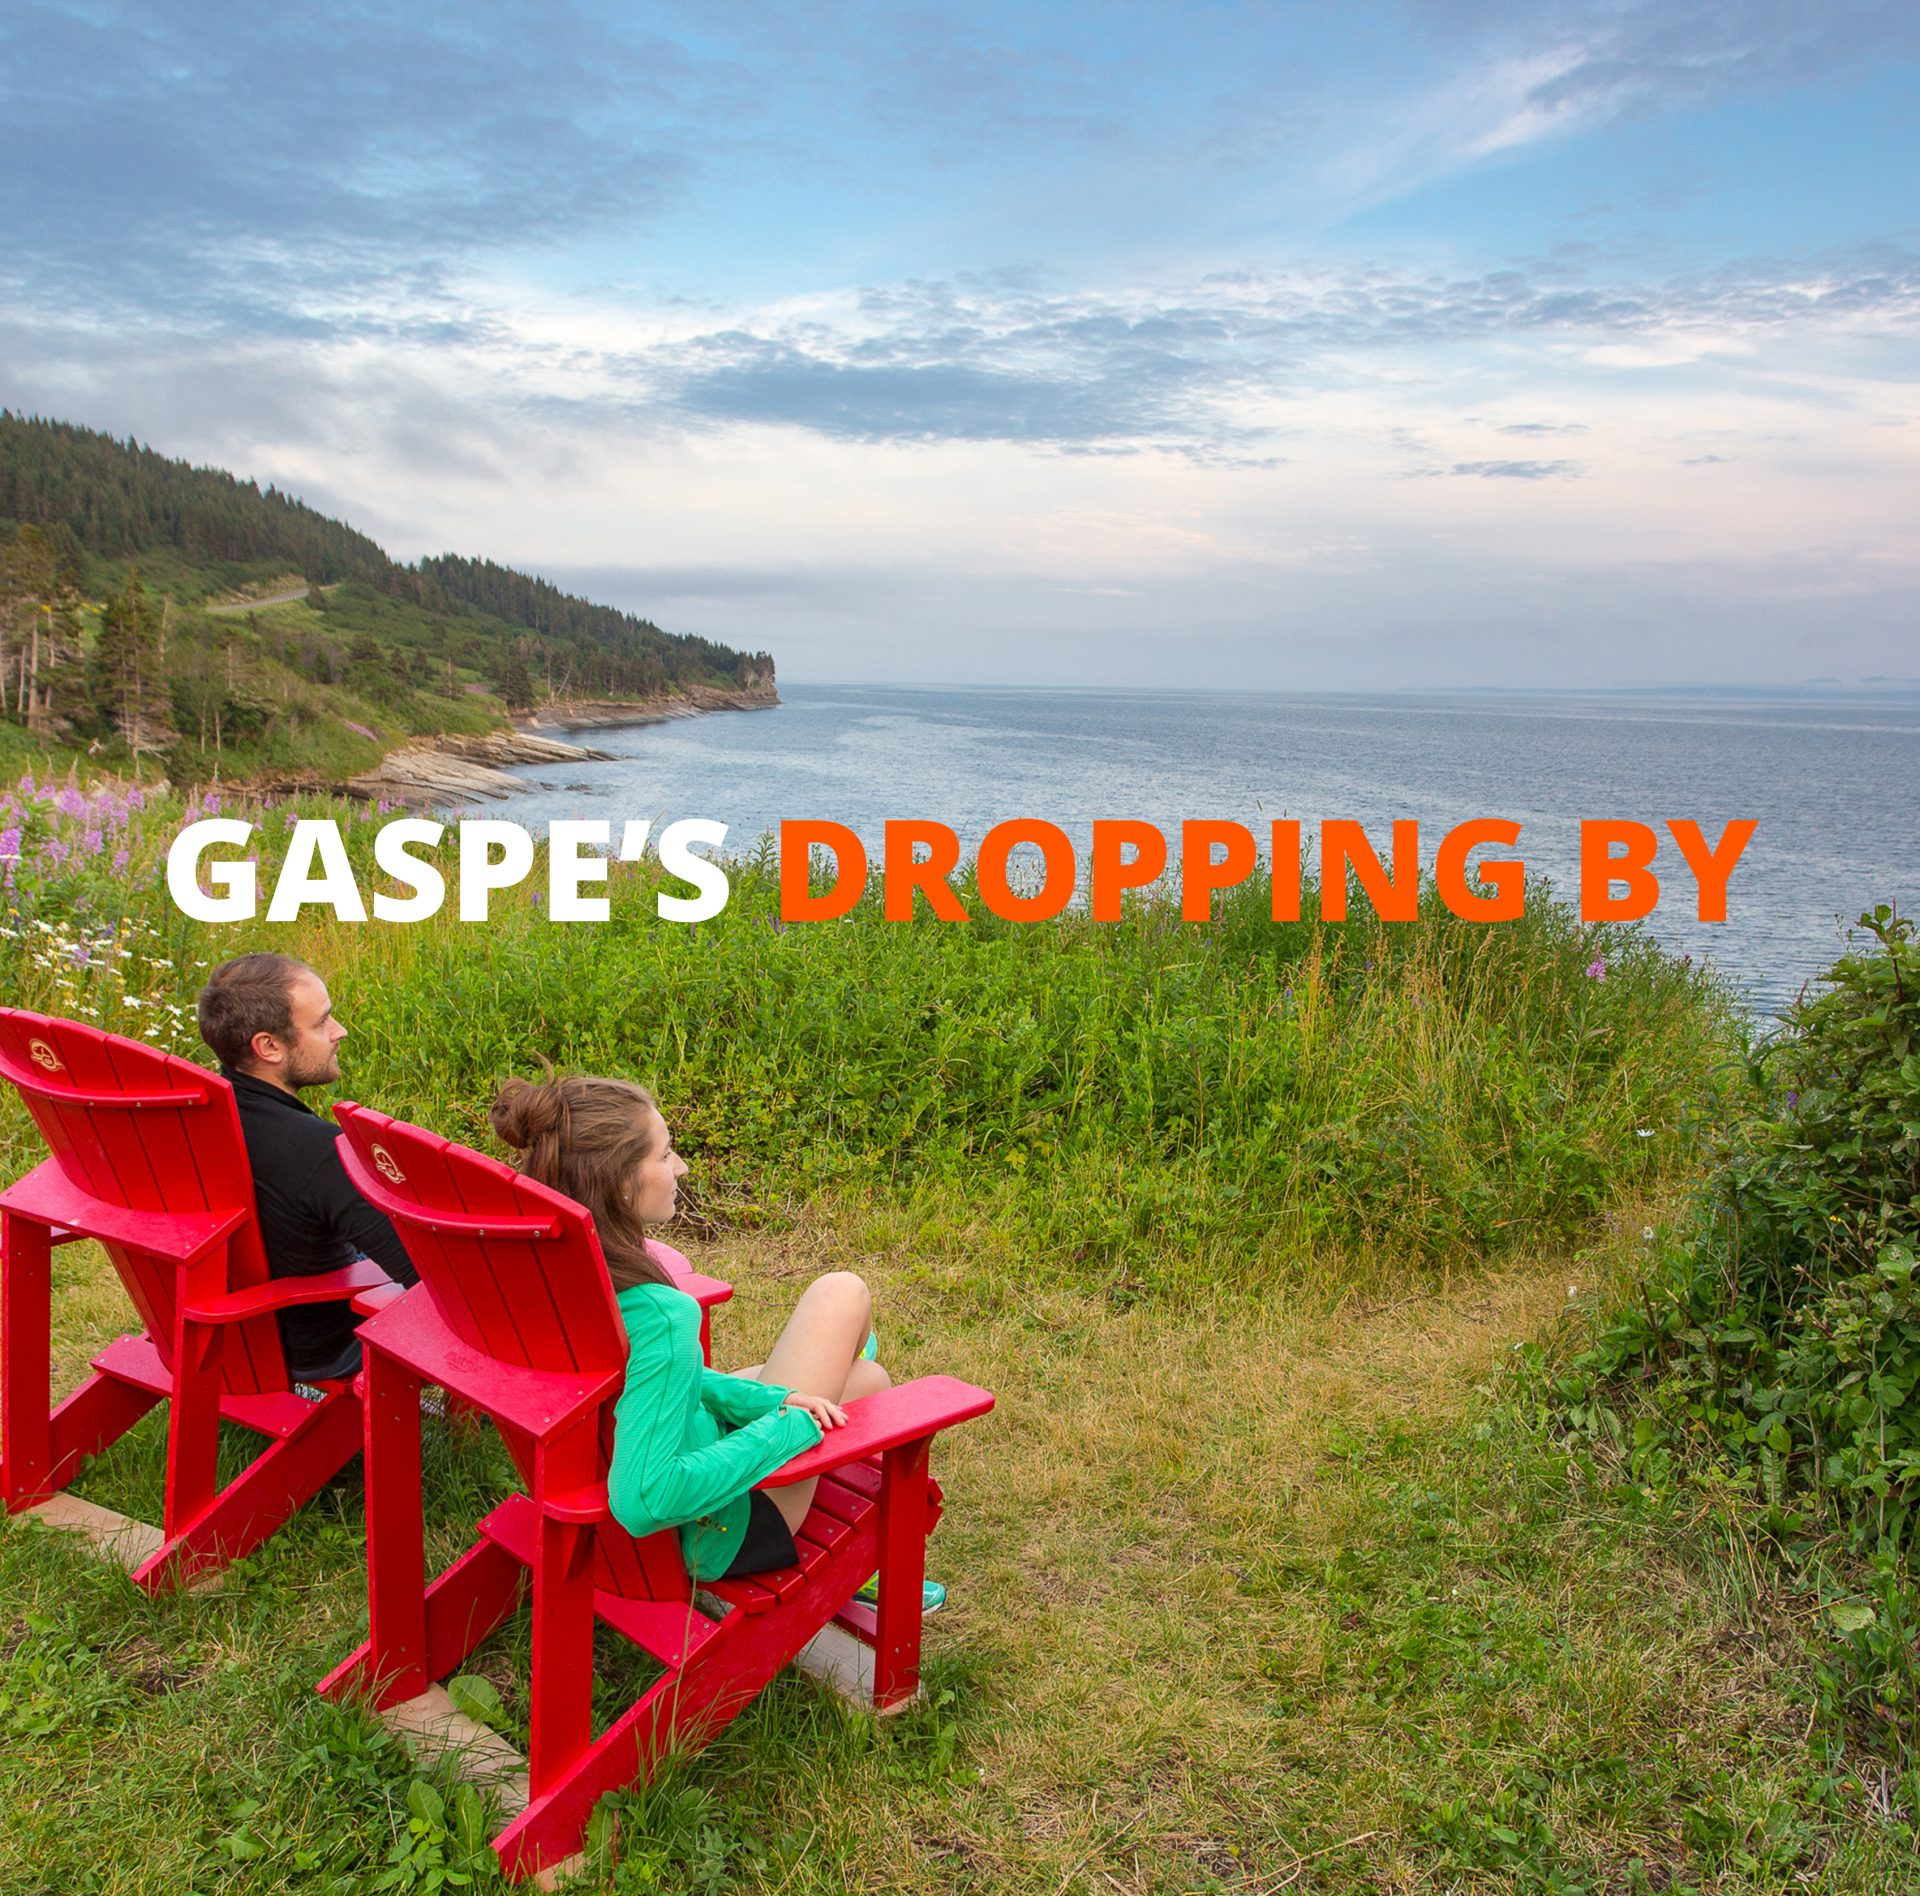 Gaspe's dropping by : Forillon's red chairs… at home!